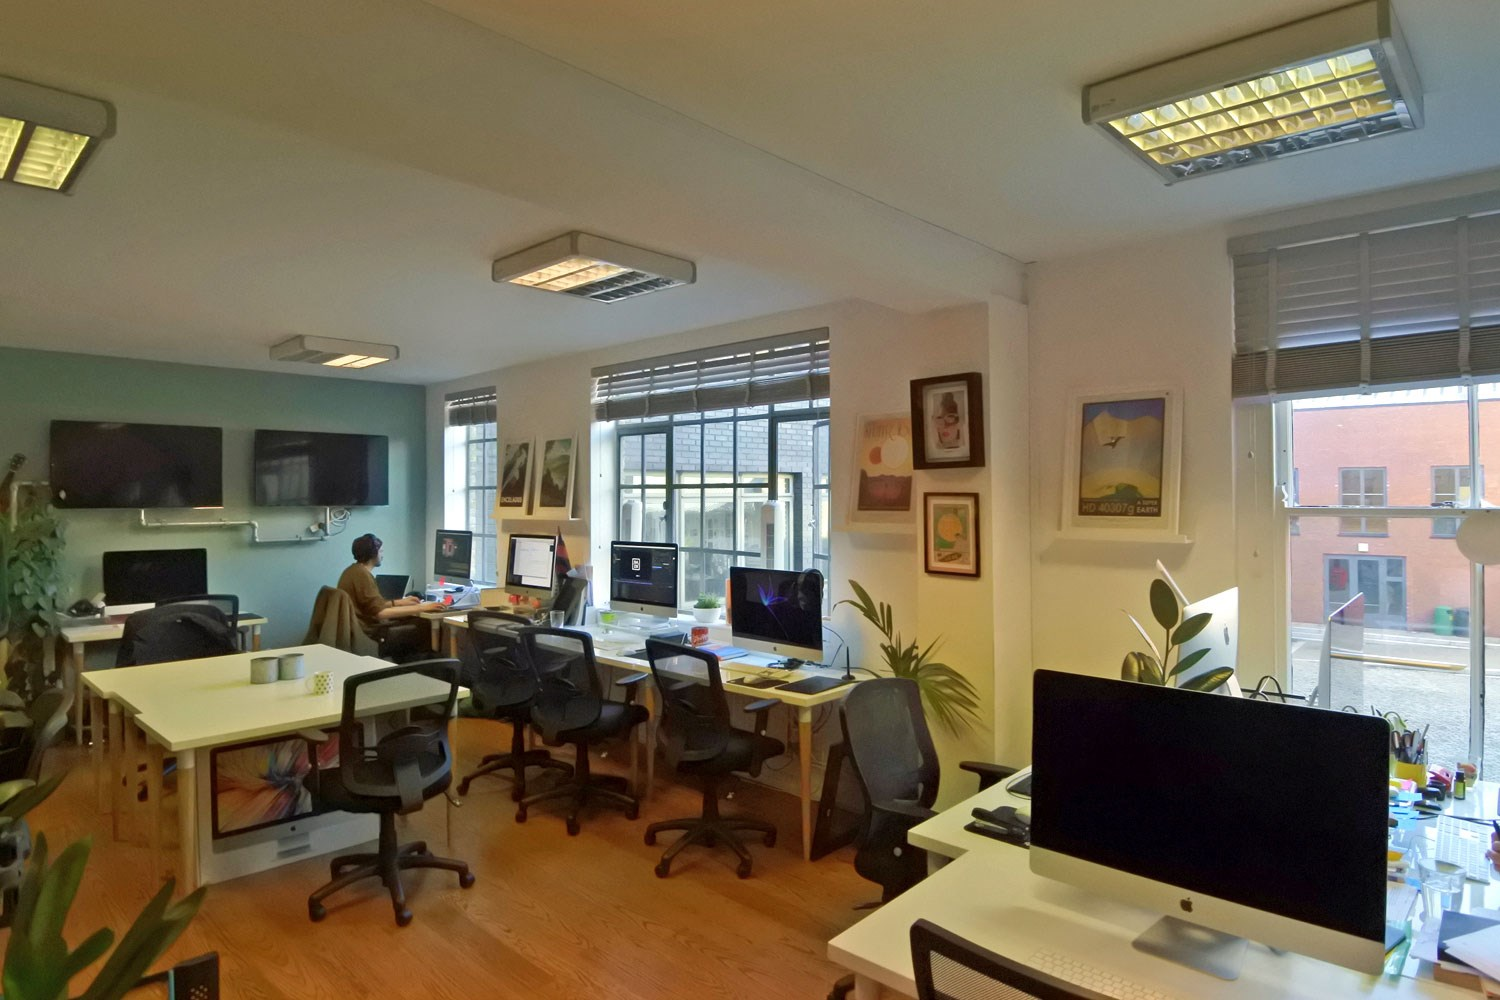 5 6 Hoxton Square First Floor N1 6NU Shoreditch Office Internal1